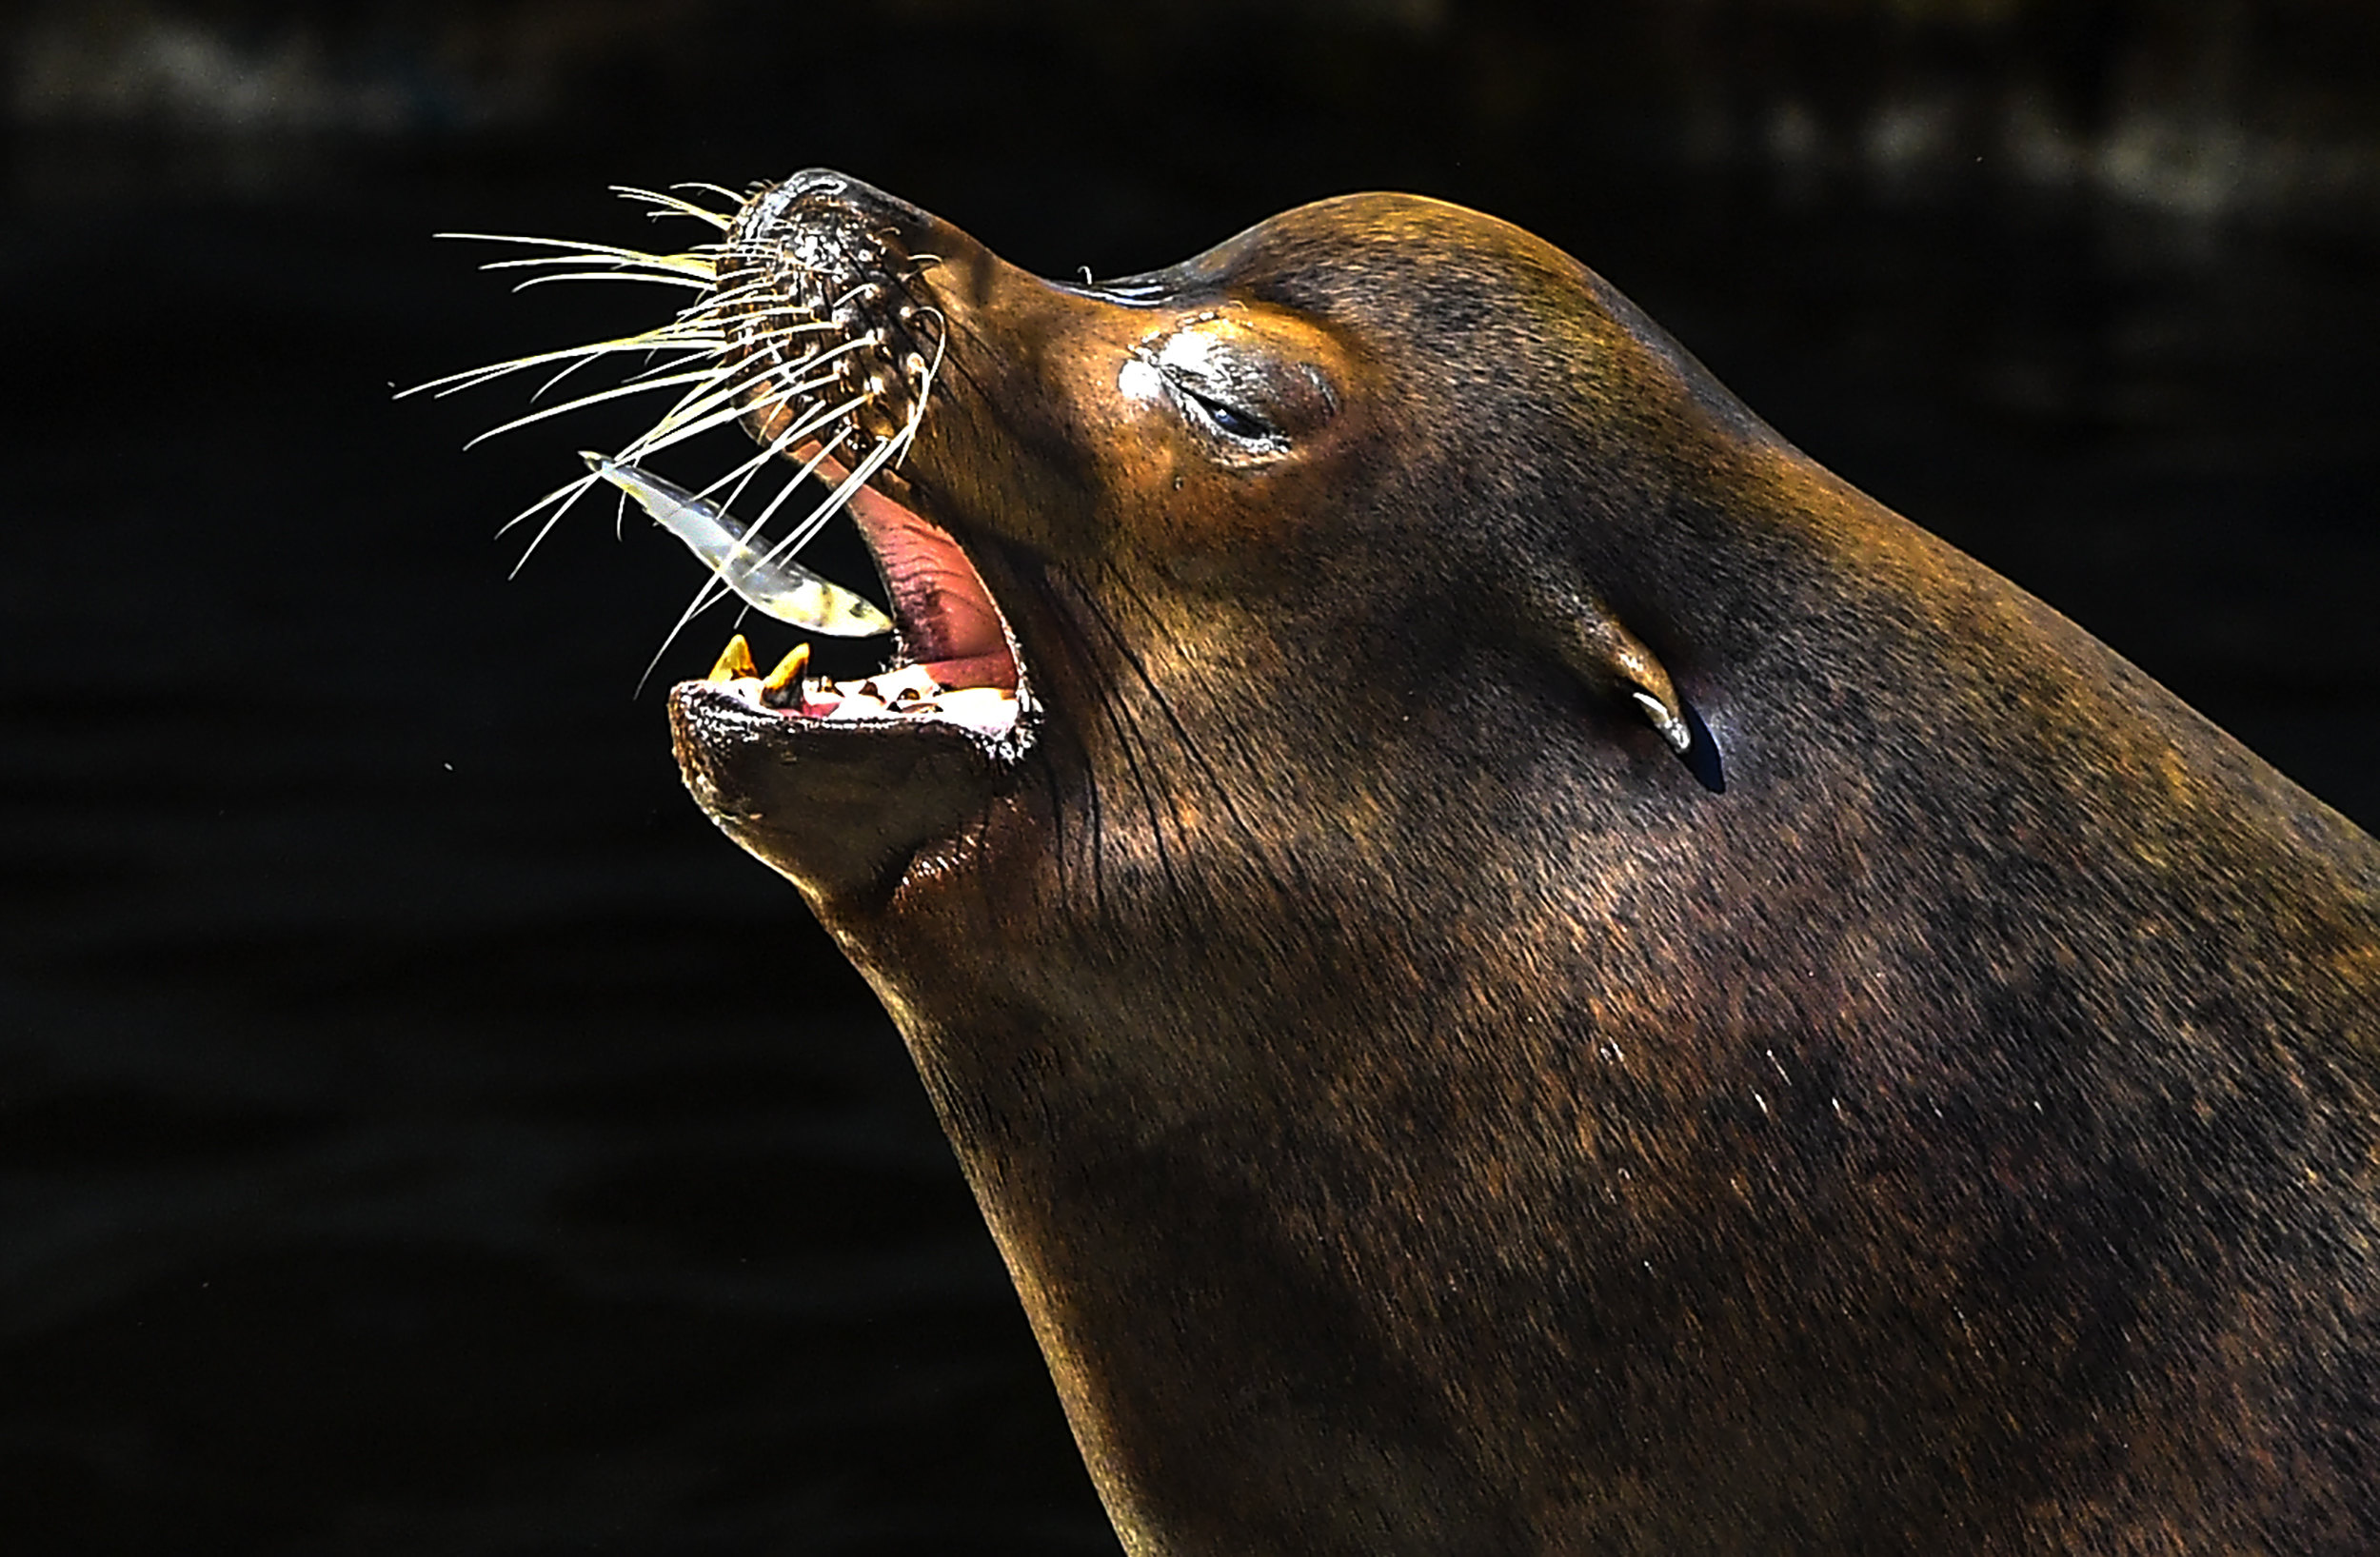 A sea lion catches a fish during avery hot day in the zoo in Skopje, Republic of North Macedonia on 30 July 2020. Due to a heatwave with temperatures around 40 degrees Celsius, the workers from Skopje's zoo, prepared and served special frozen food and fruits for the animals. EPA-EFE/GEORGI LICOVSKI